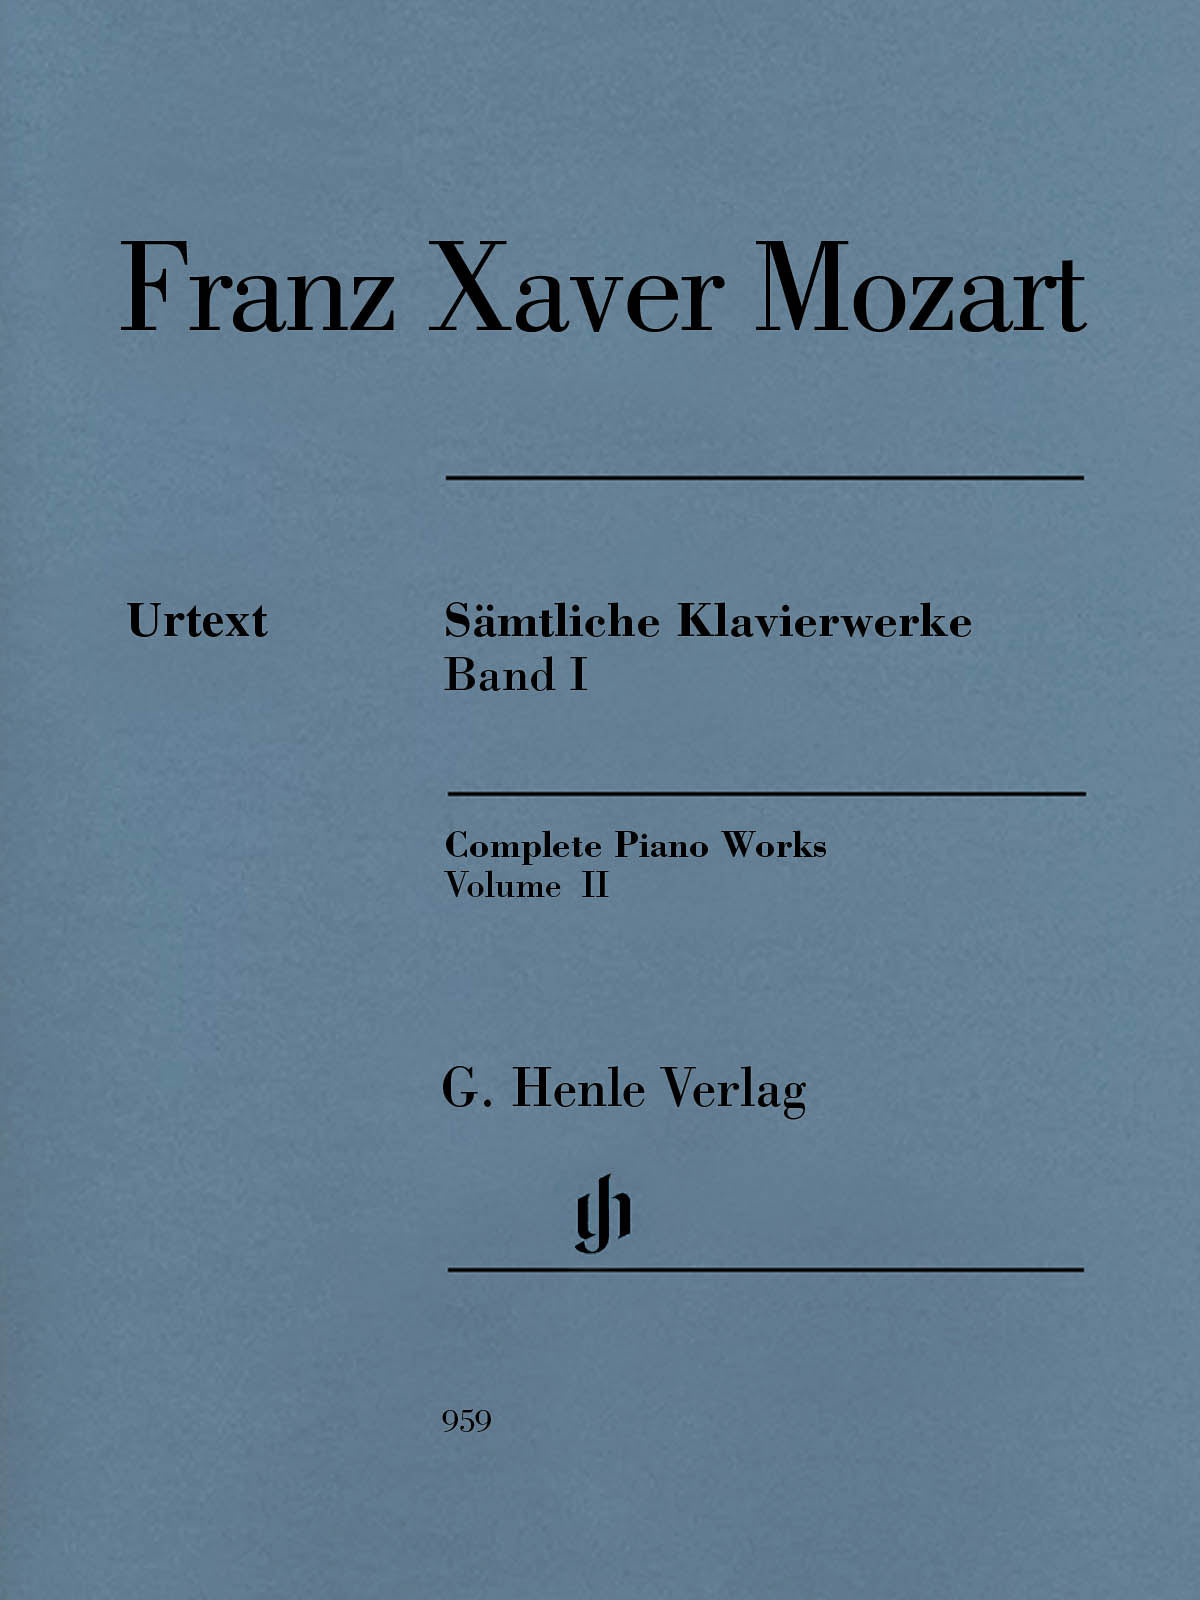 F. X. Mozart: Complete Piano Works - Volume 2